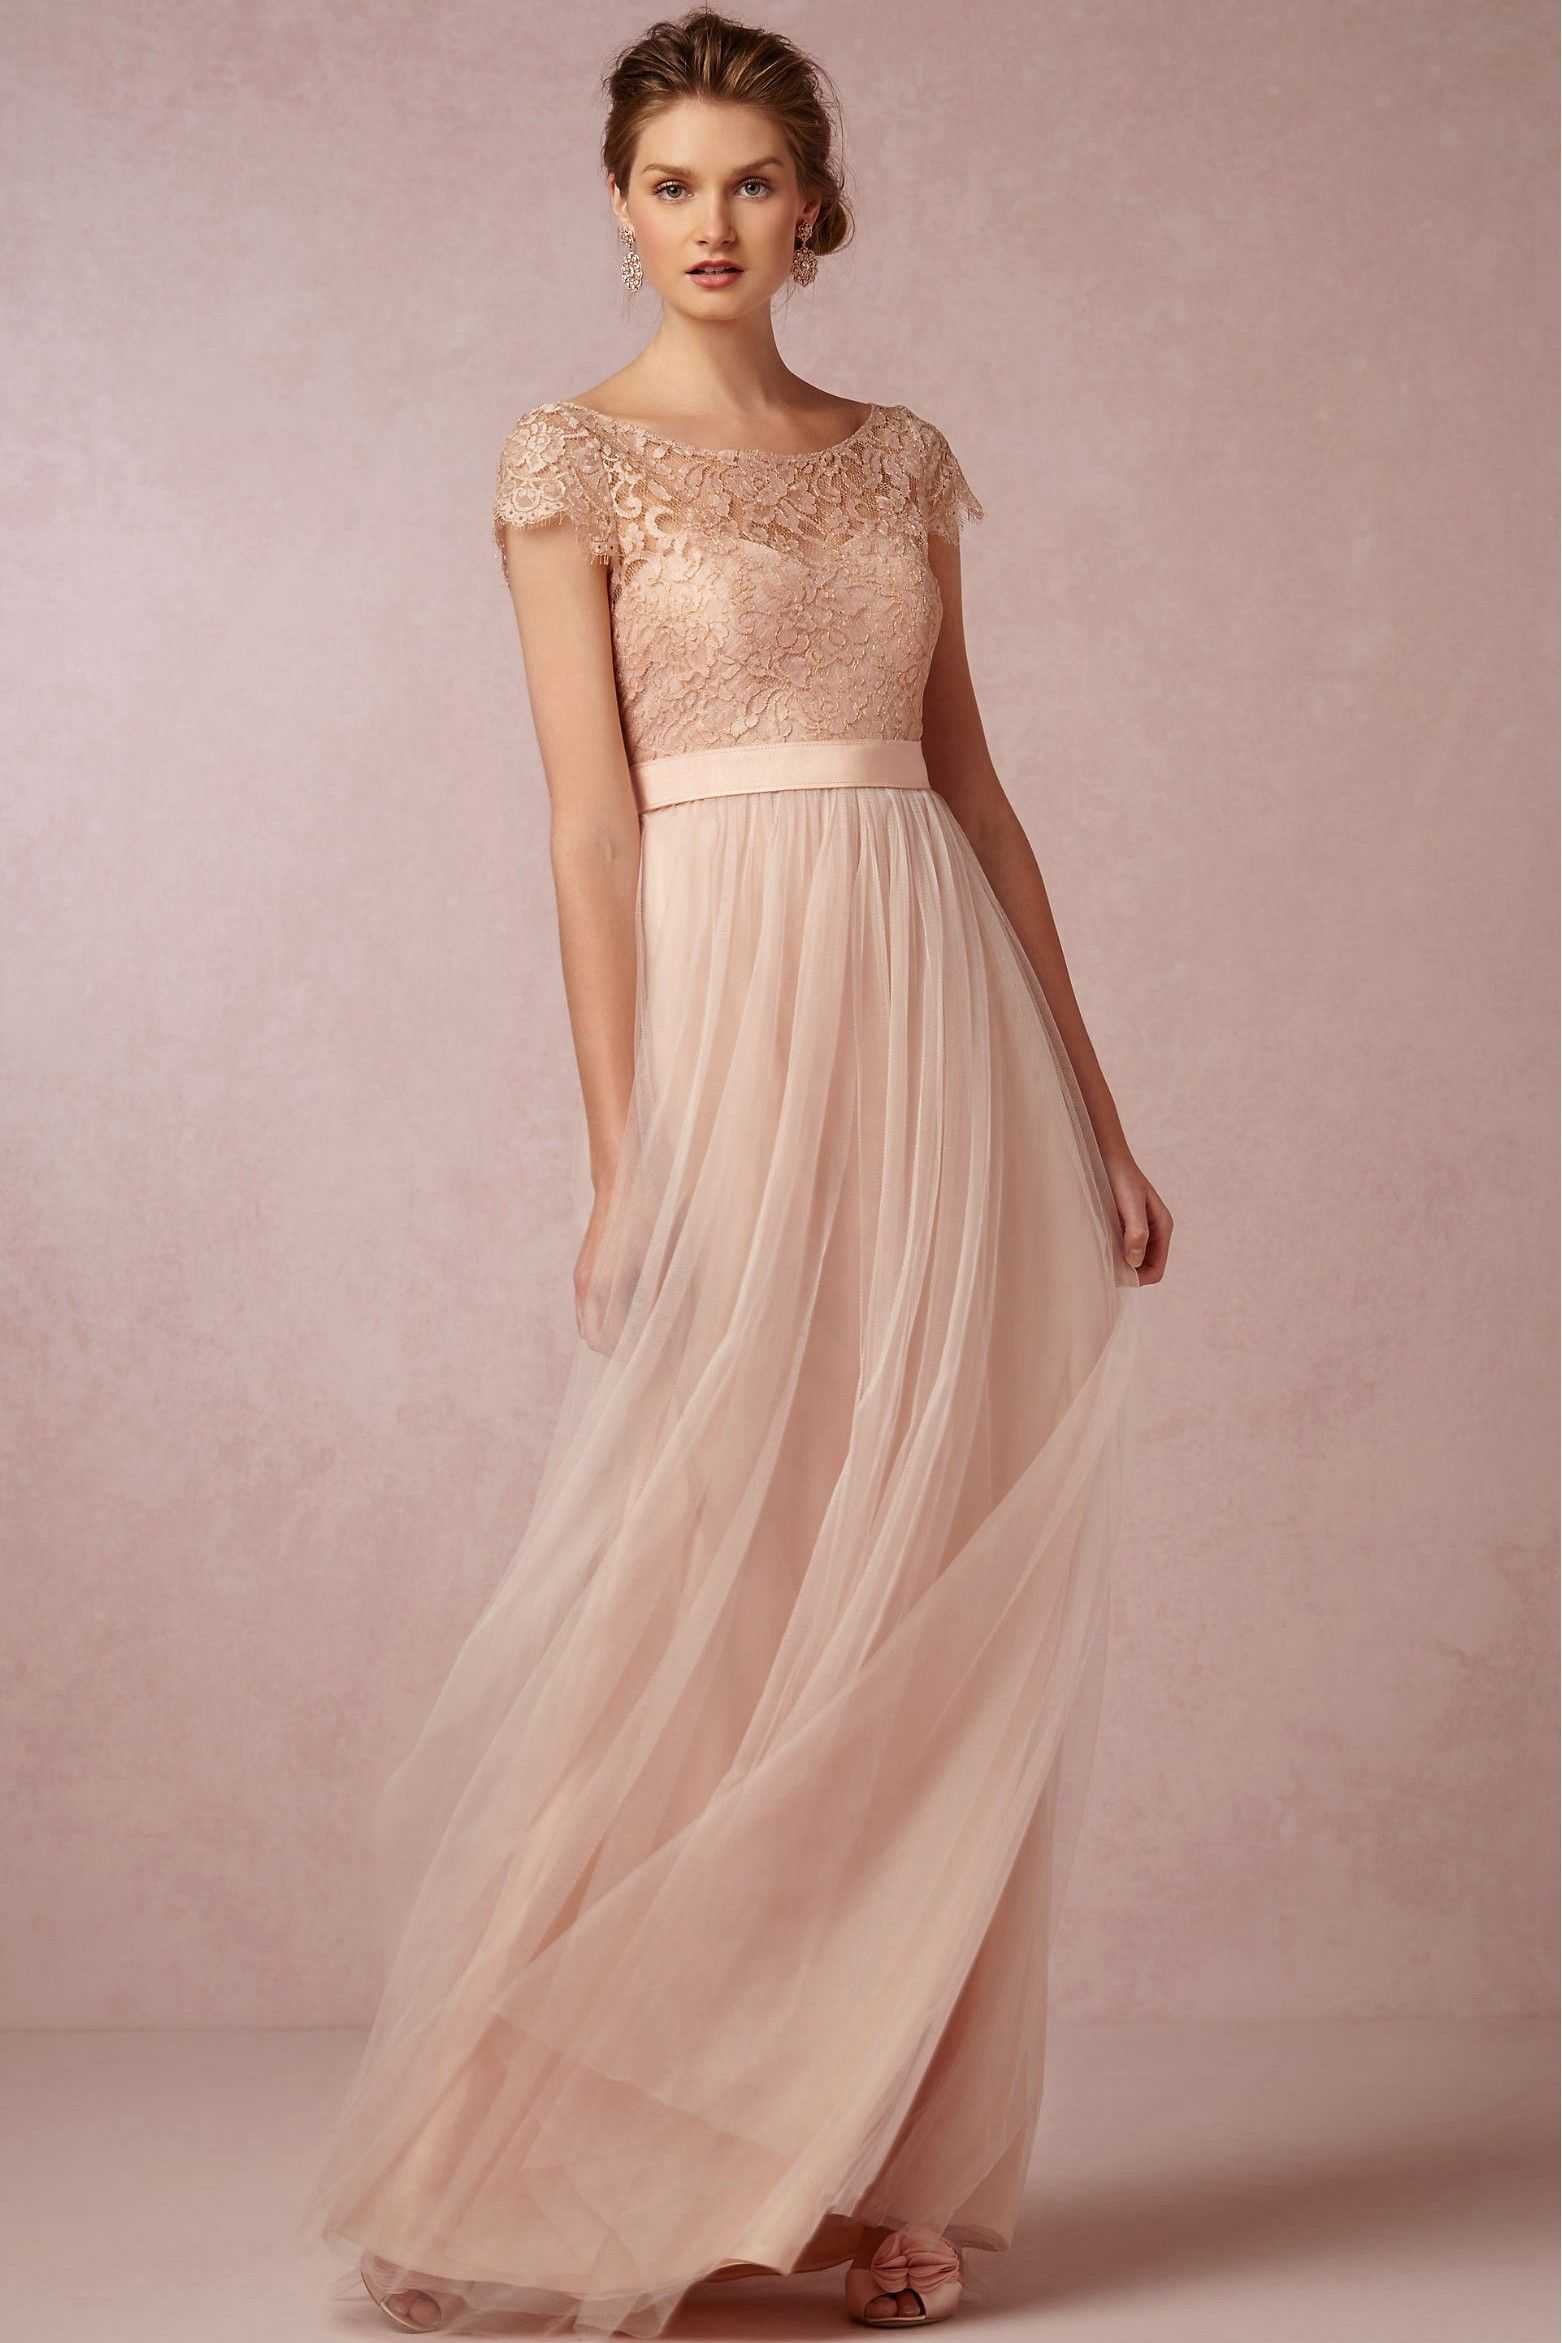 Affordable Price of A-line Scoop Floor-length Tulle Fabric Pink ...